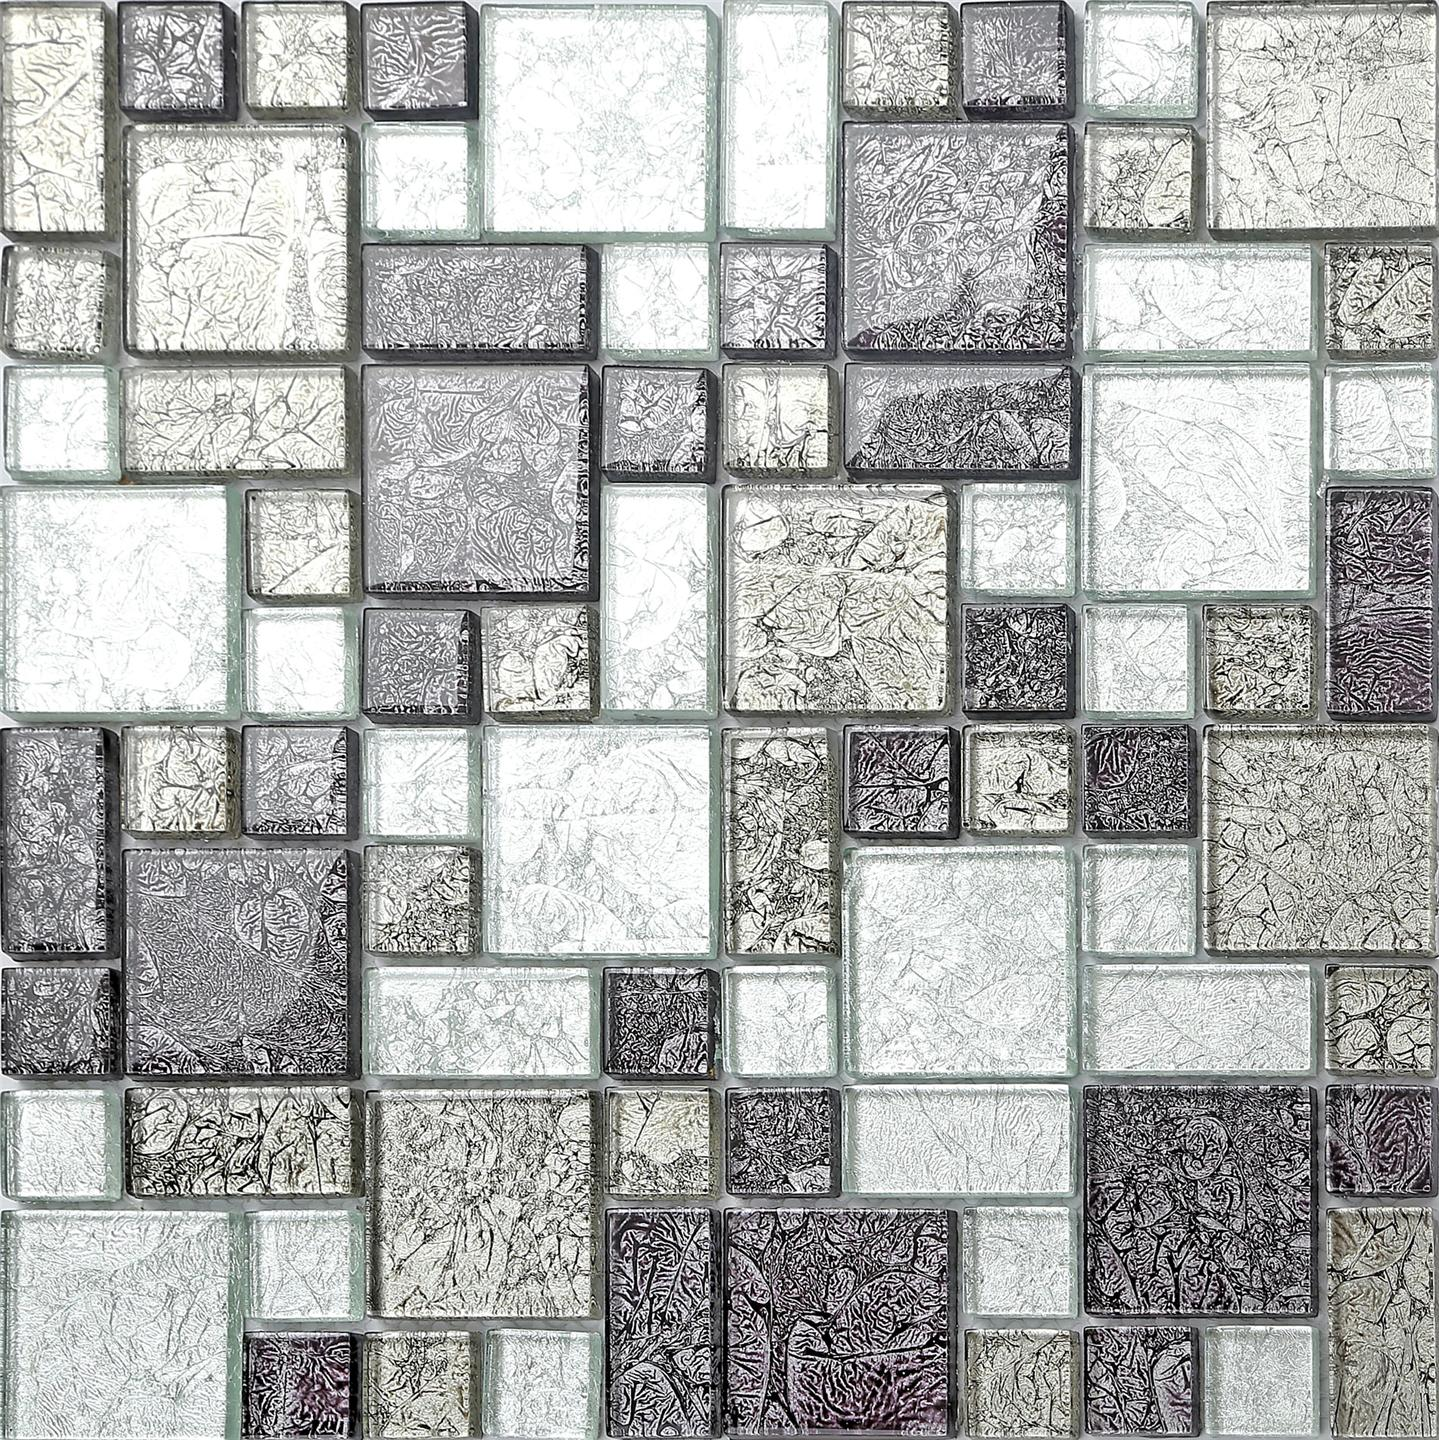 Black Silver Hong Kong Foil Glass Mosaic Tiles Modular Random Mix Sheet Mt0044 Ebay